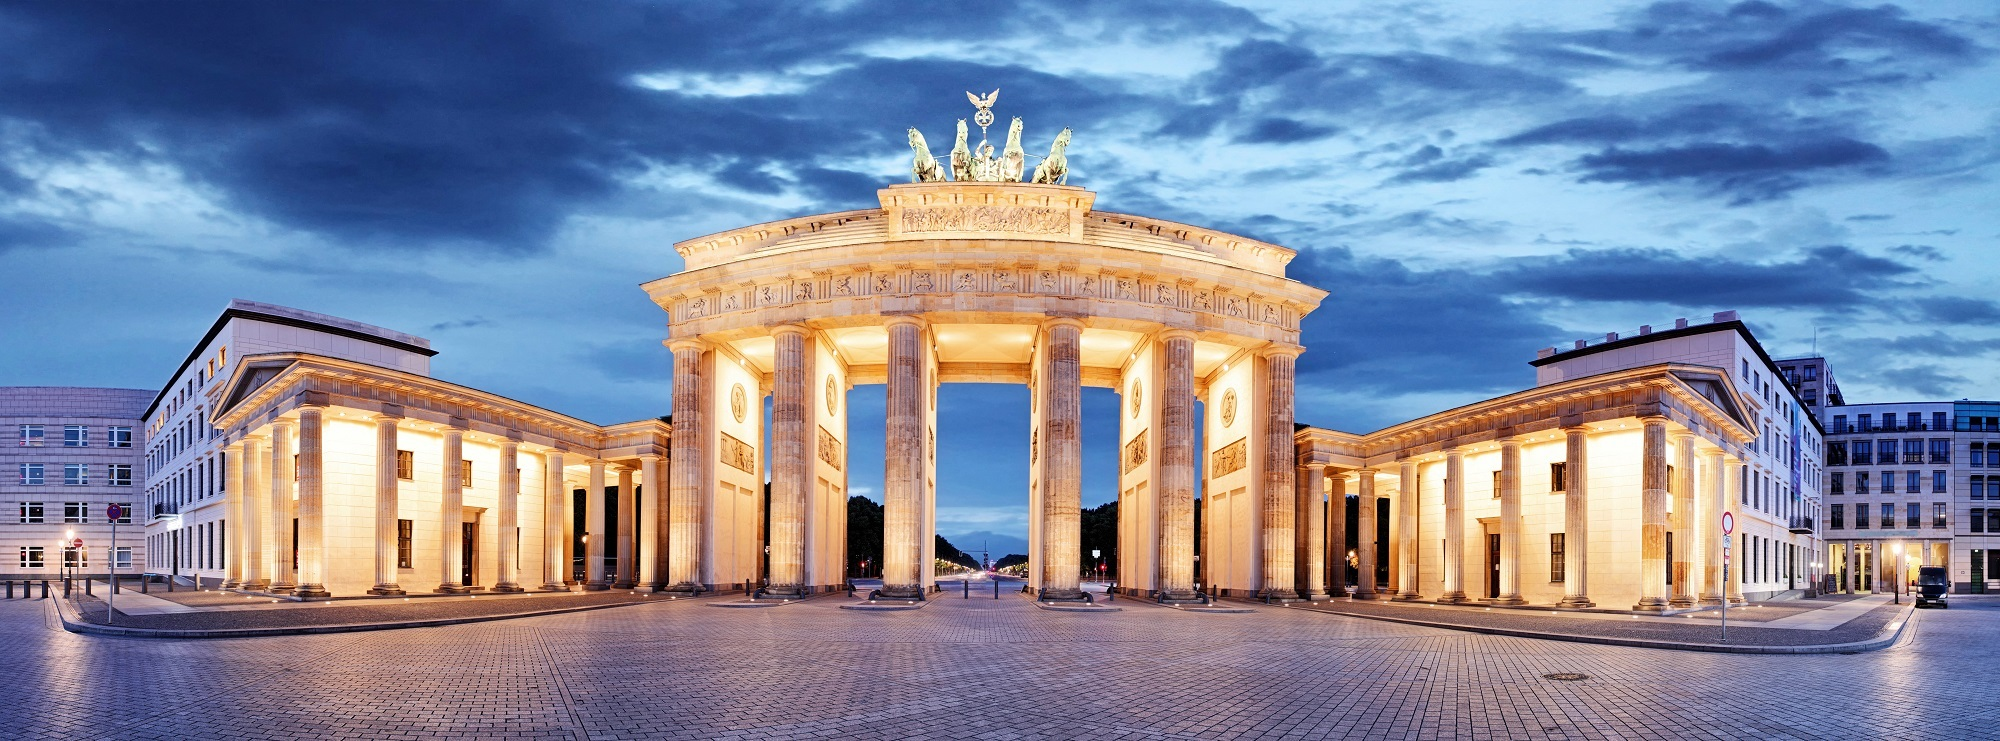 The Brandenberg Gate, Berlin